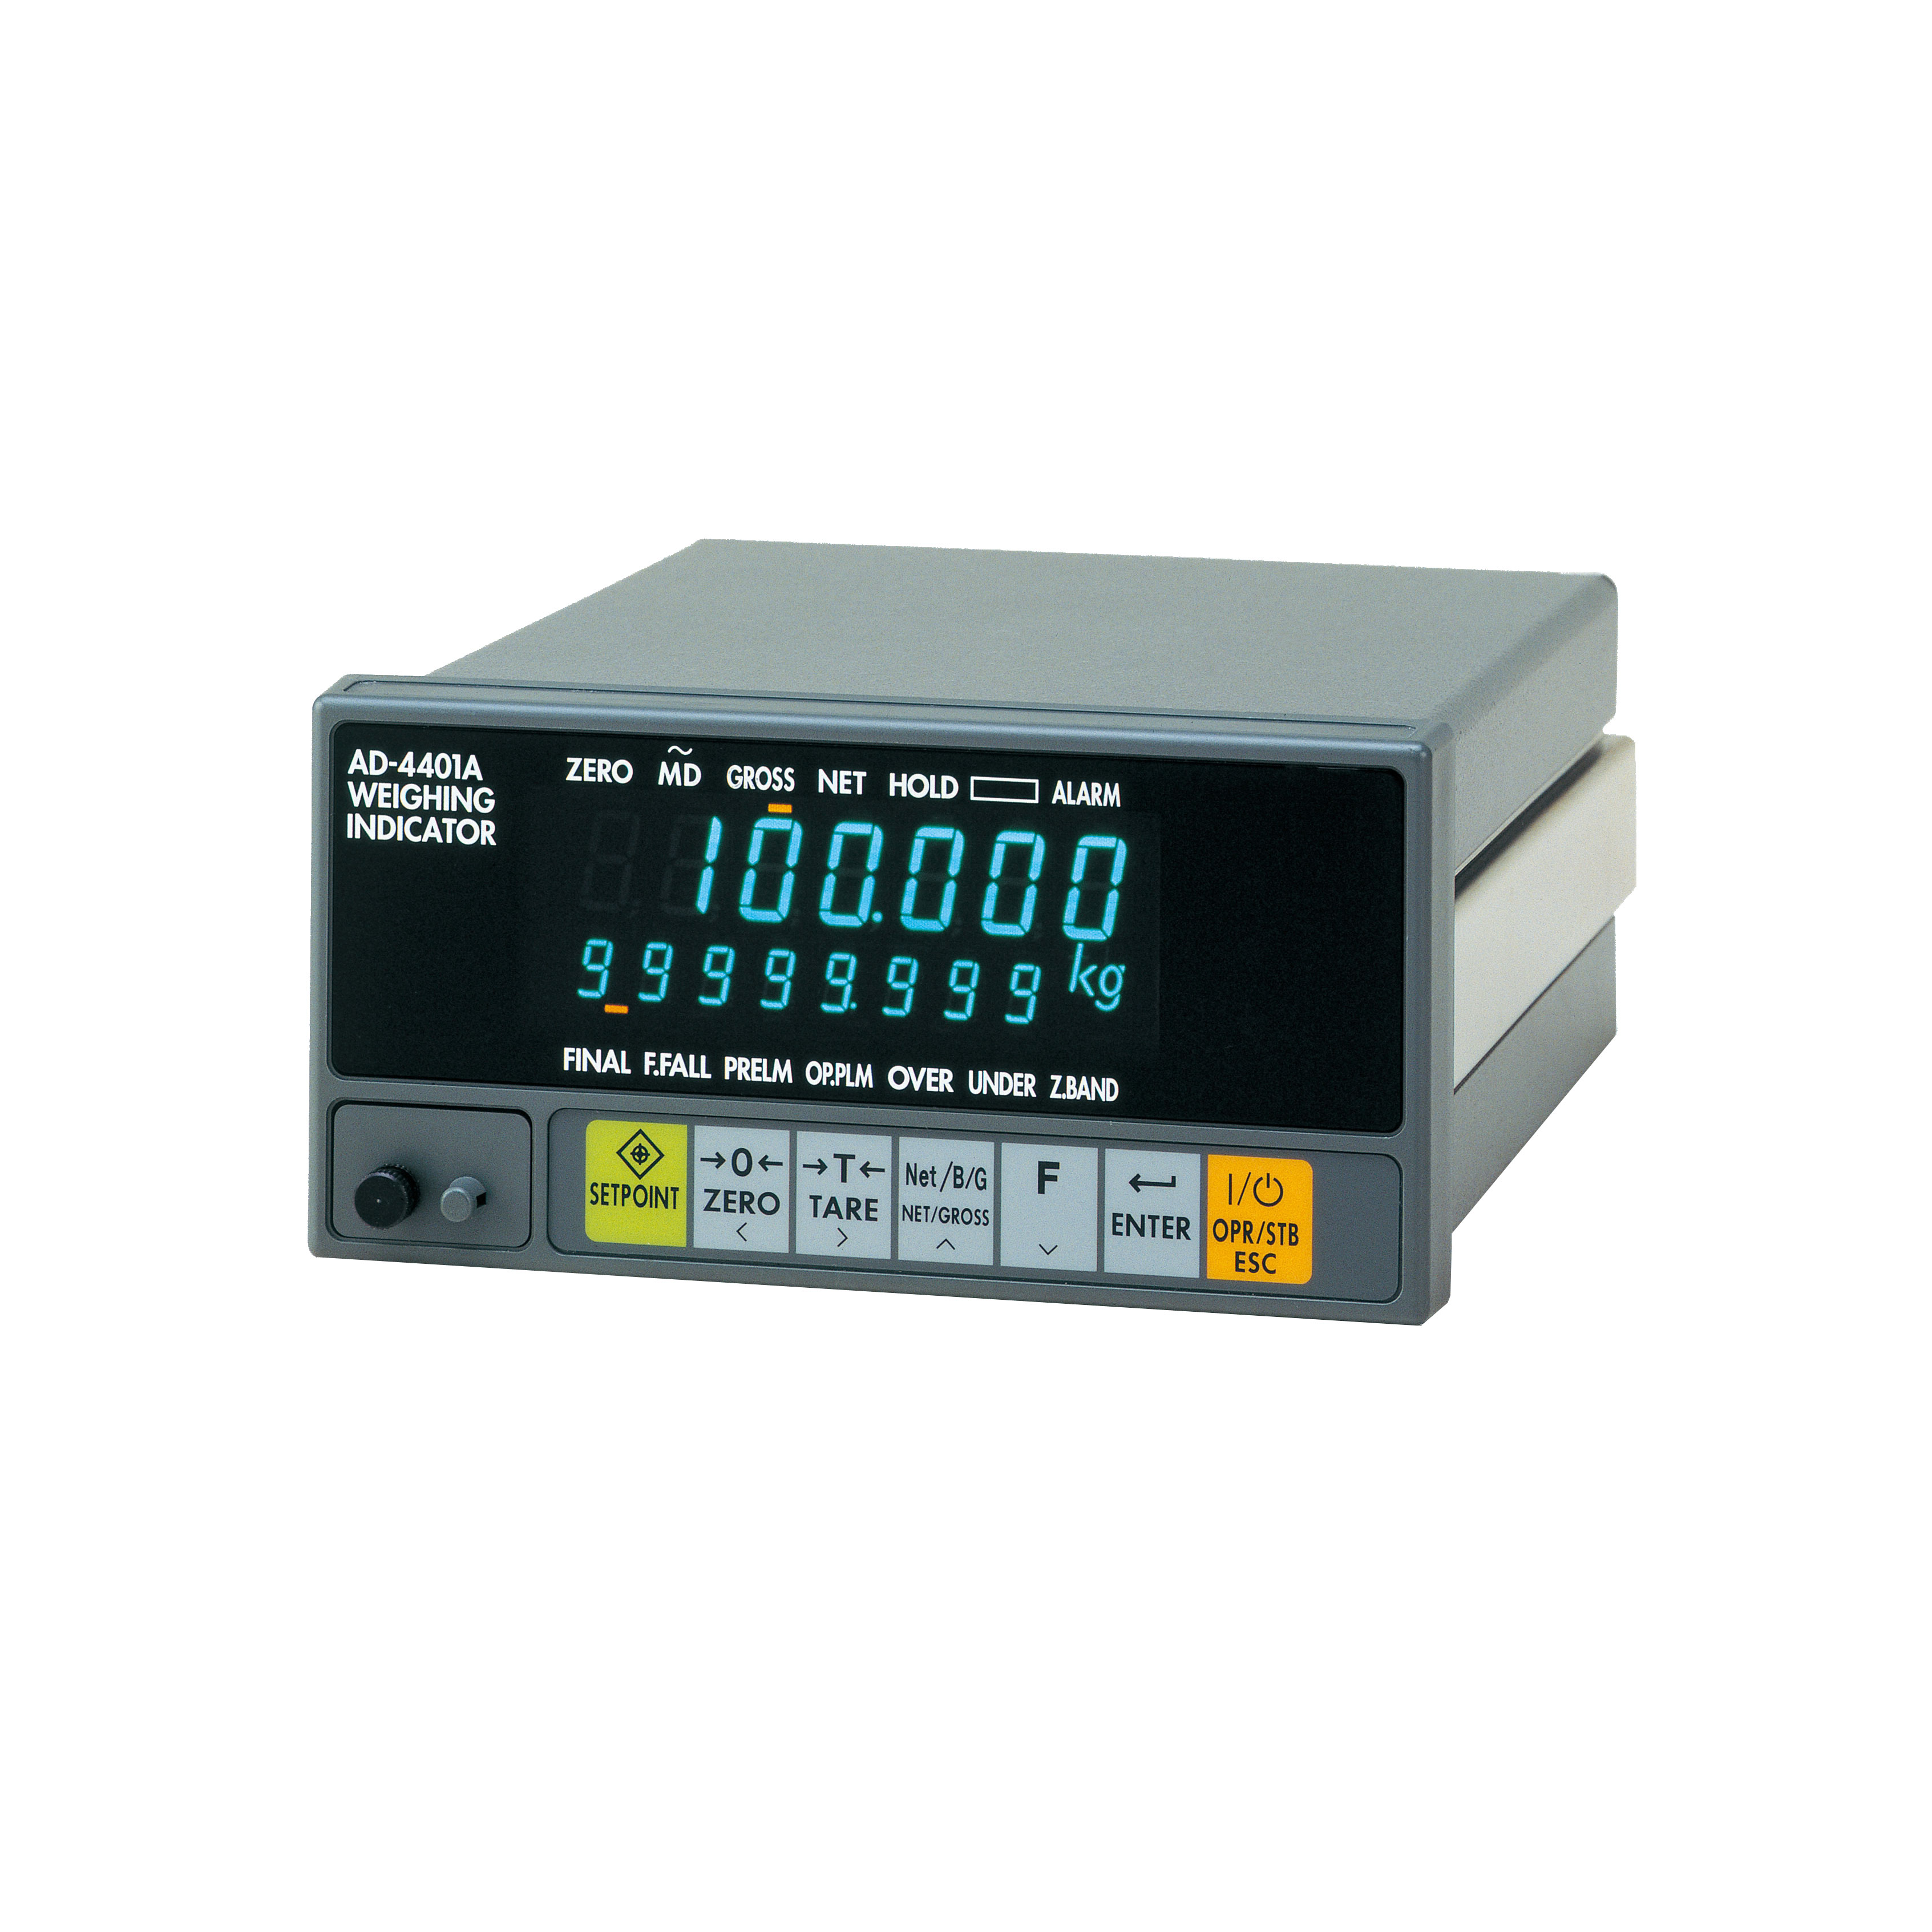 AD-4401 High Speed Batching Indicator